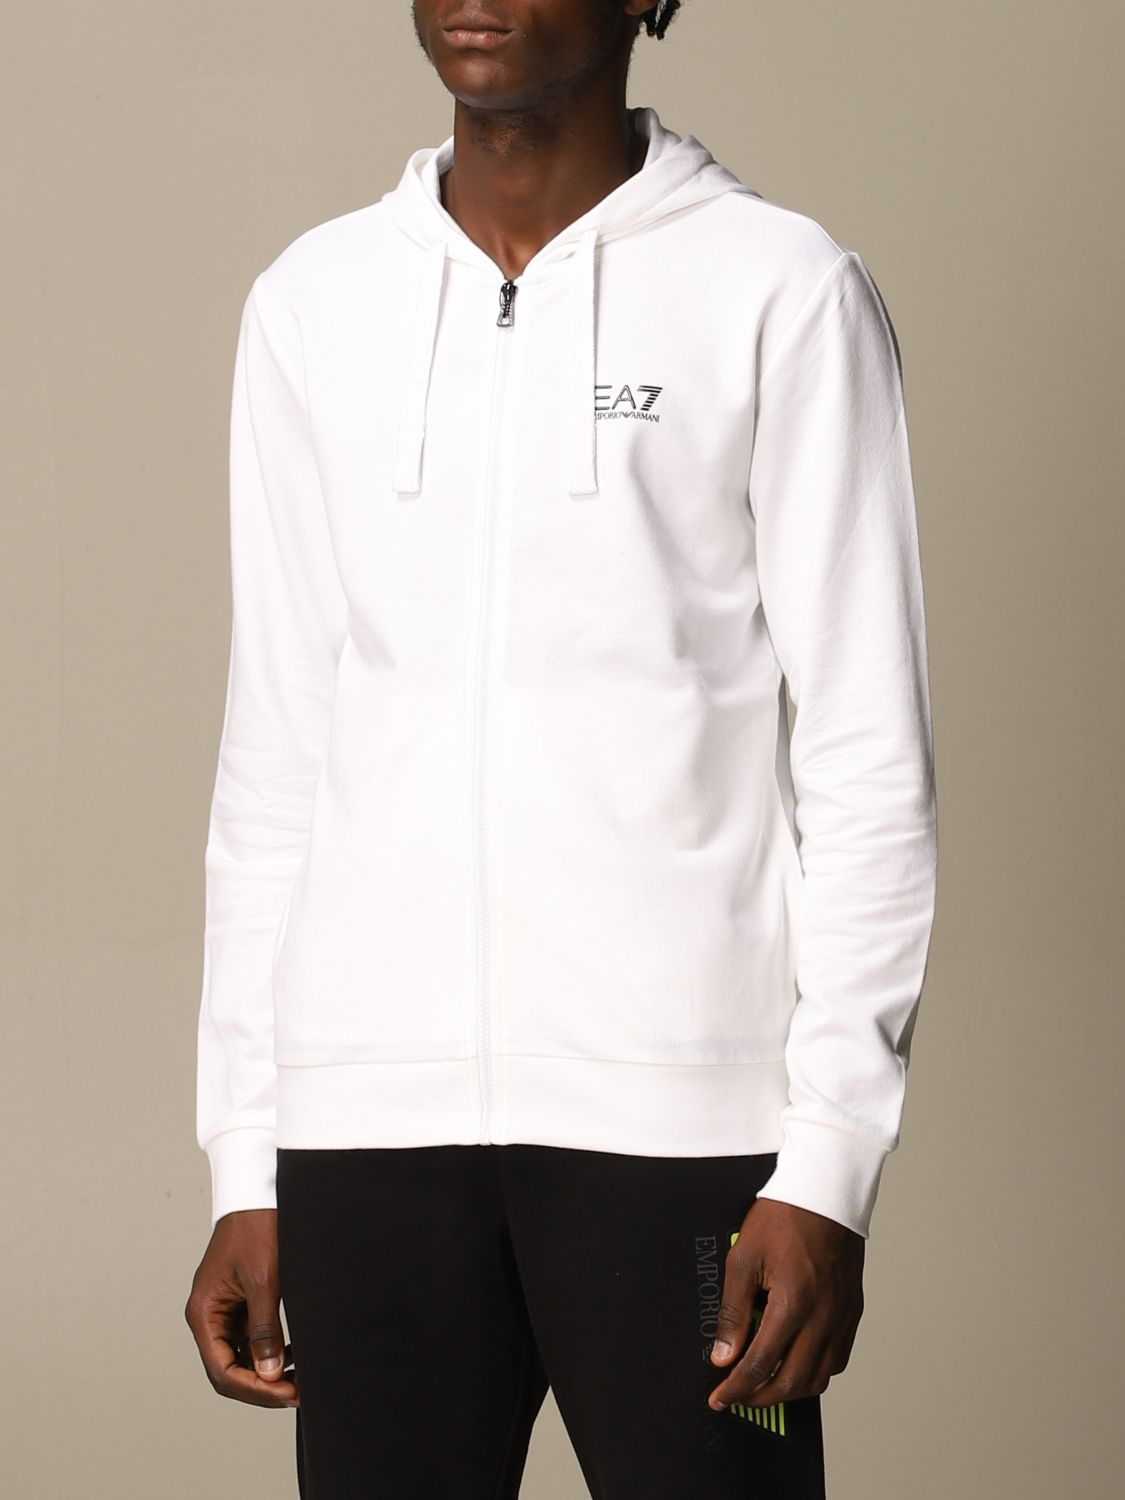 Sweatshirt Ea7: Sweatshirt men Ea7 white 4